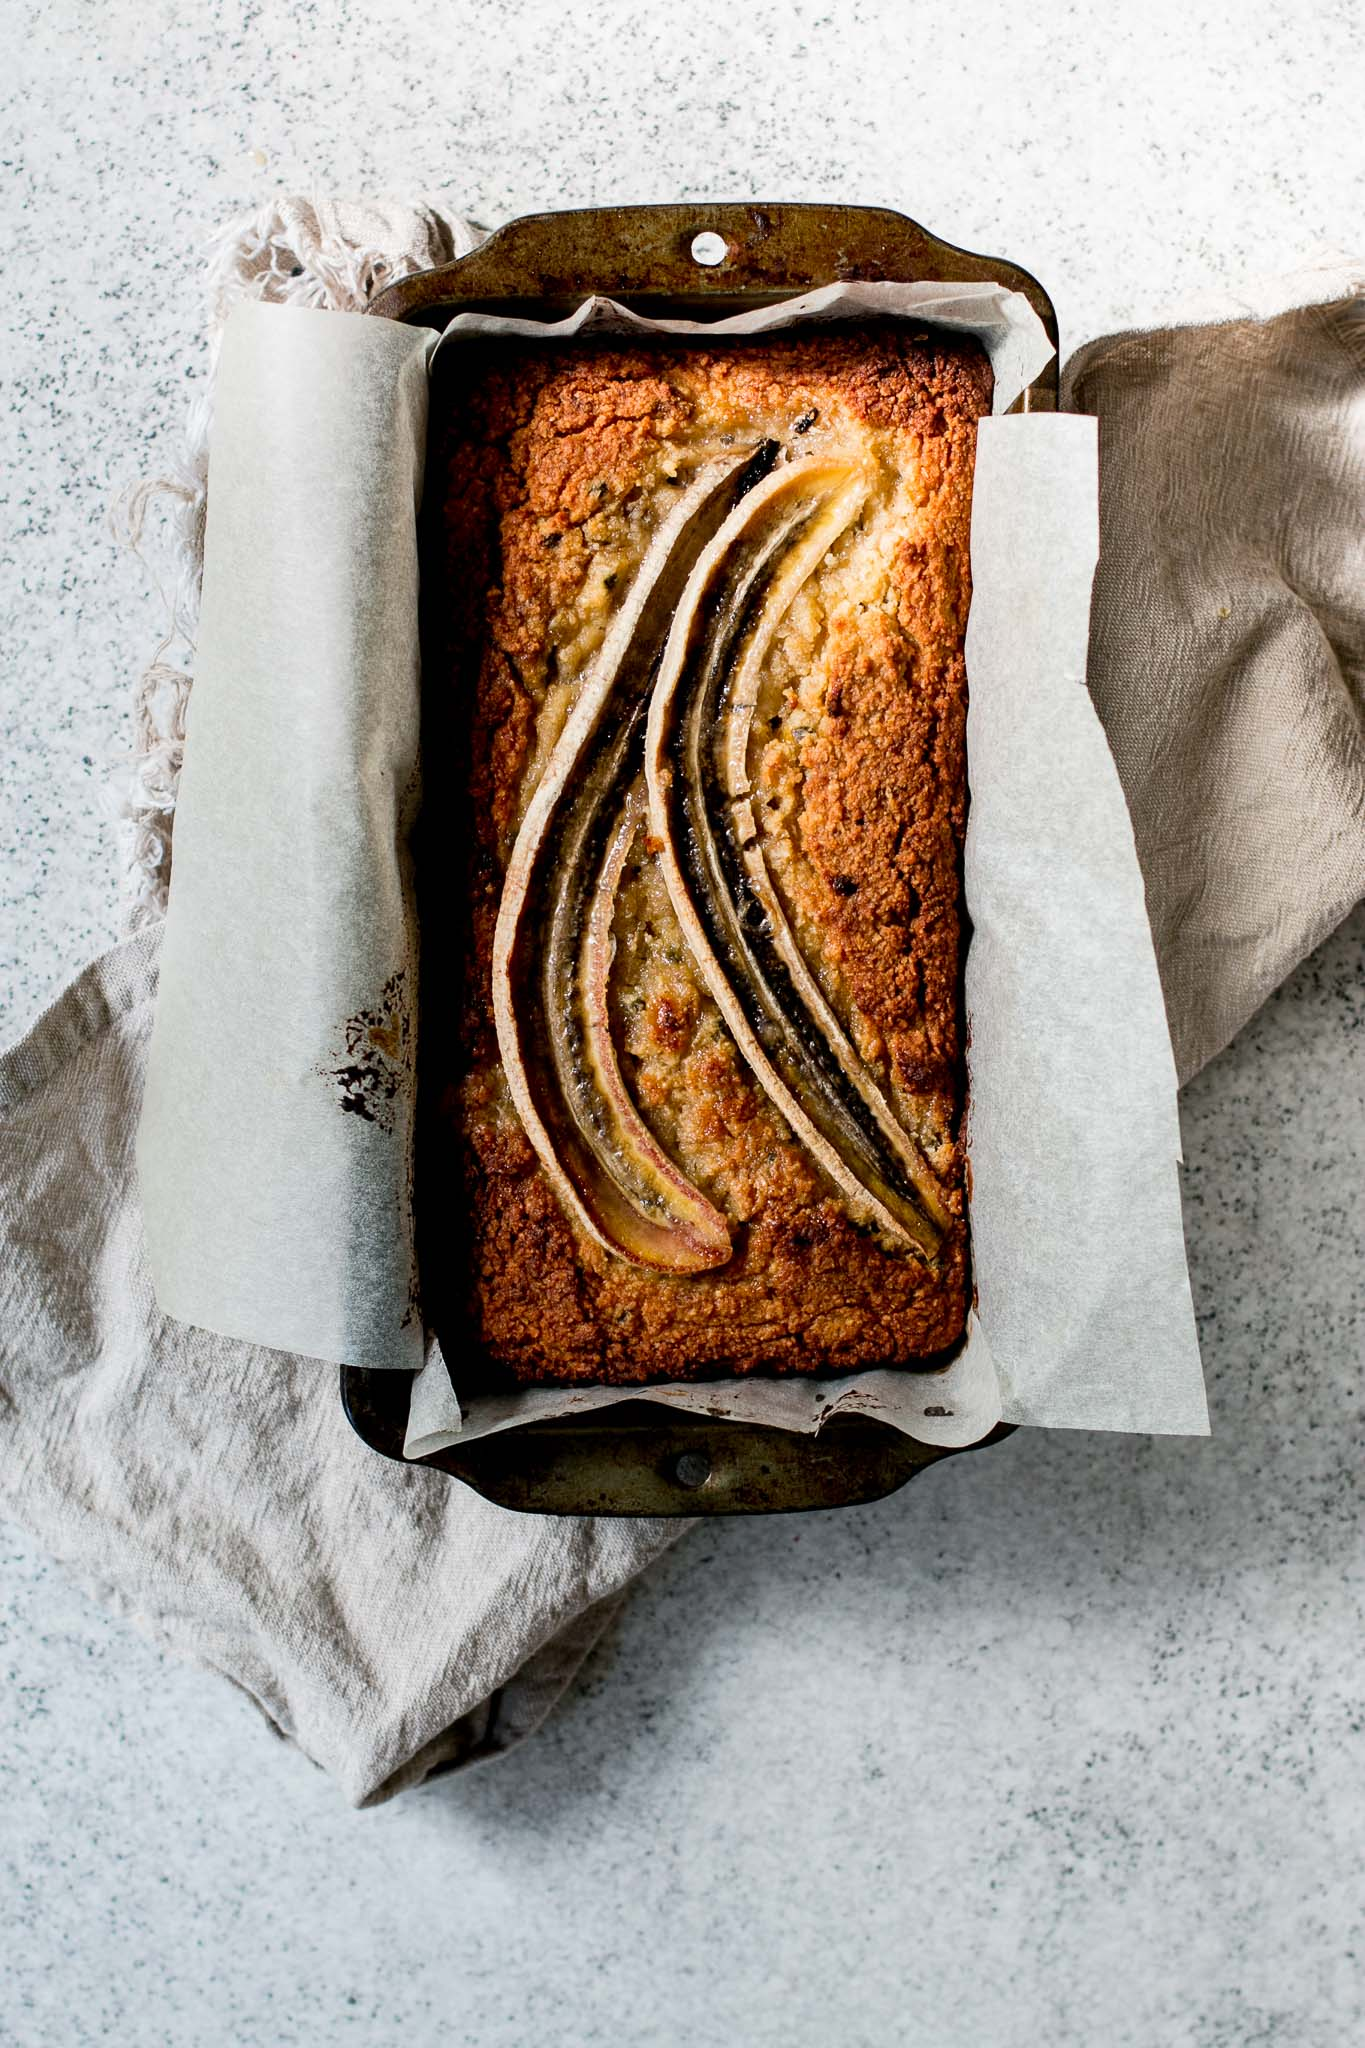 Healthier Banana, Passionfruit & Coconut Loaf | The Brick ...